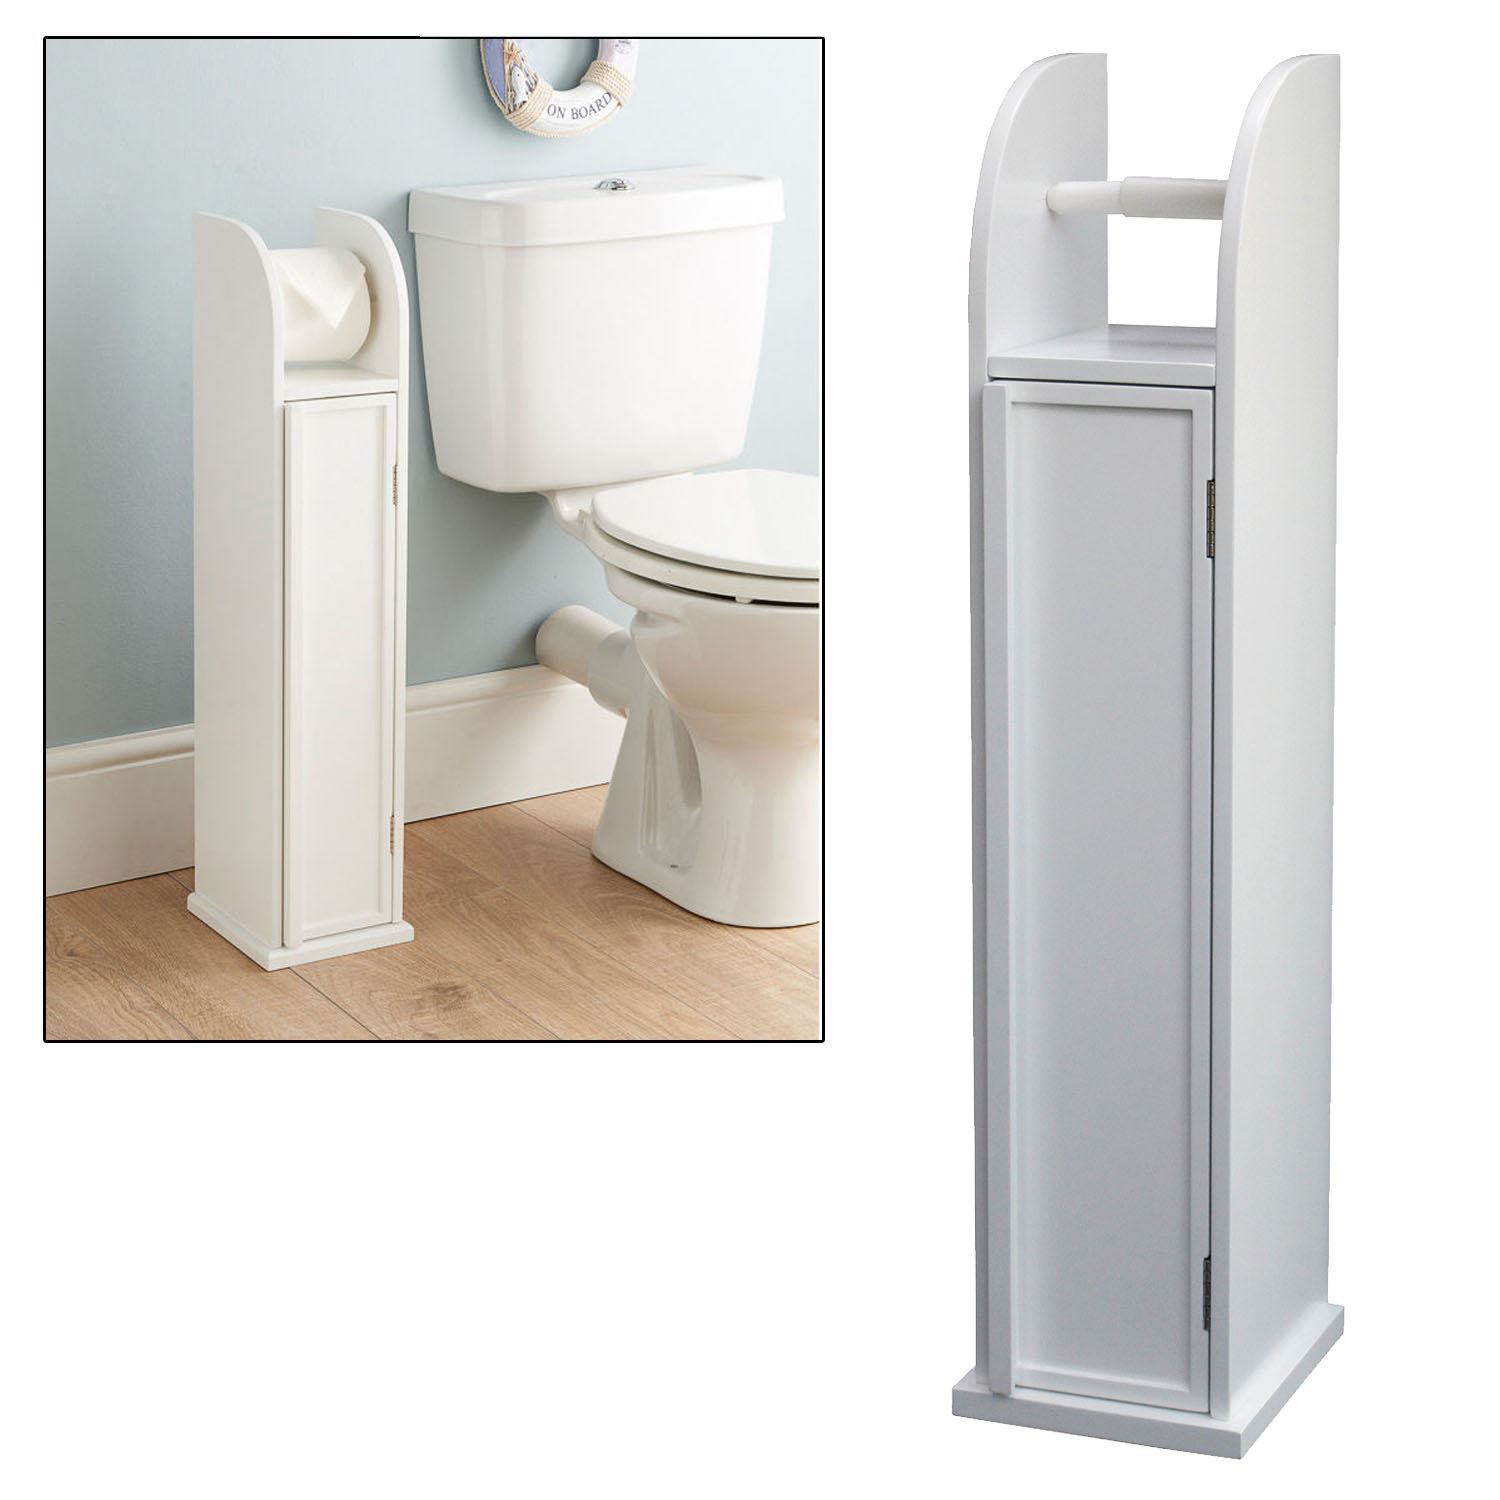 free standing white storage cabinet toilet roll holder